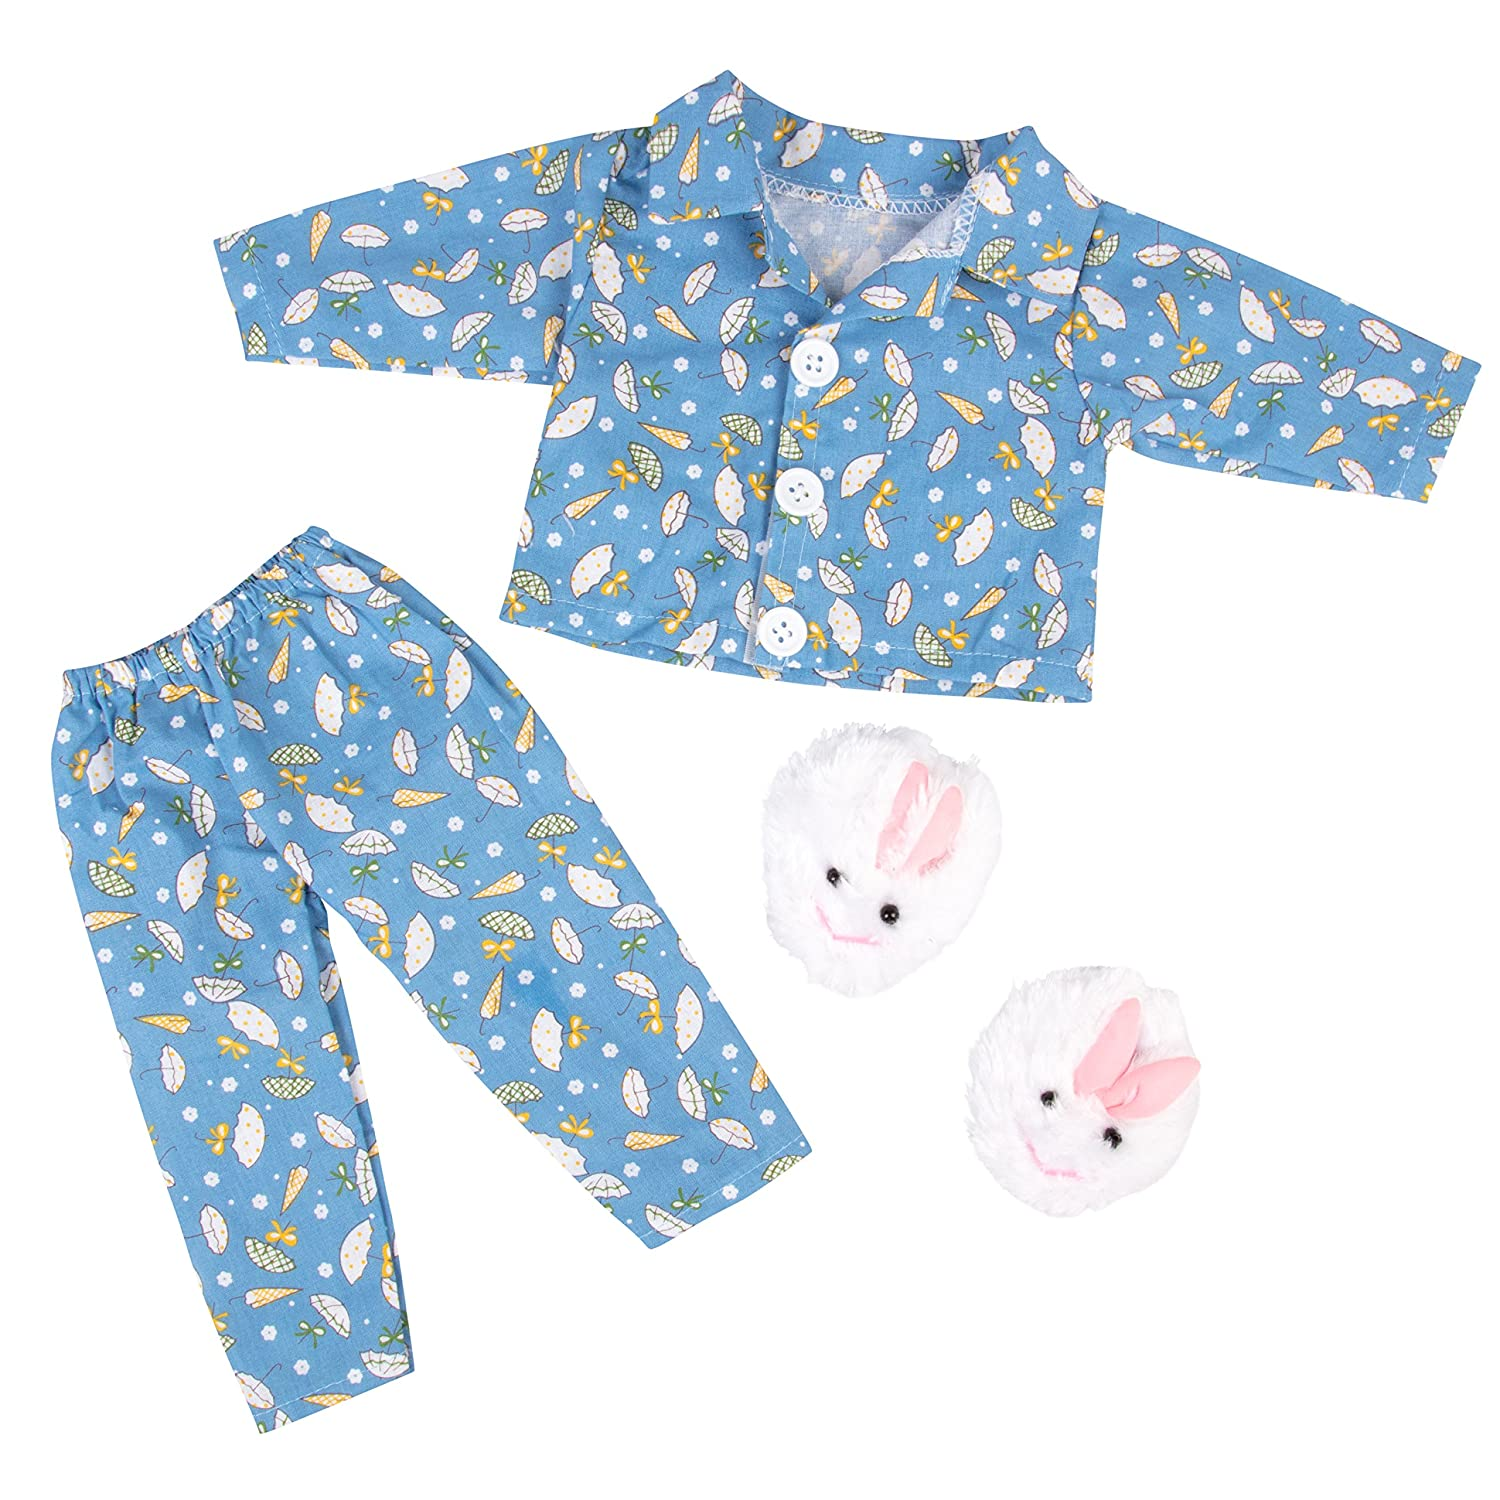 Rainy Day Set with Easter Bunny Slippers Outfit Dress Along Dolly Blue Pajamas Doll Clothes 3pcs Outfit